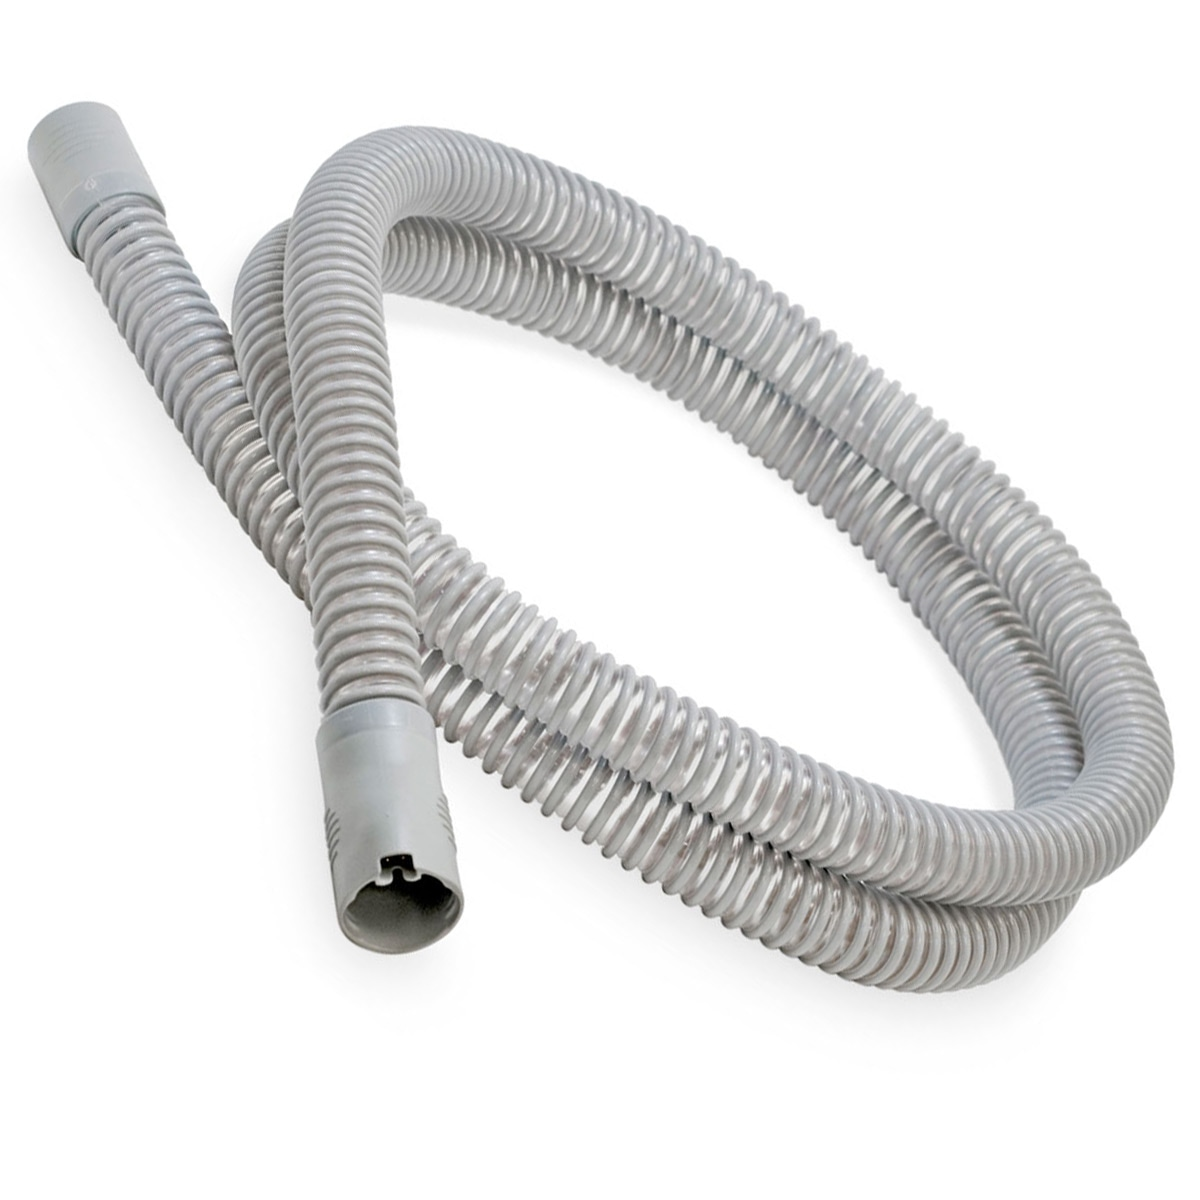 6 Foot ThermoSmart Heated Hose Tubing for F&P ICON & ICON+ CPAP Machines